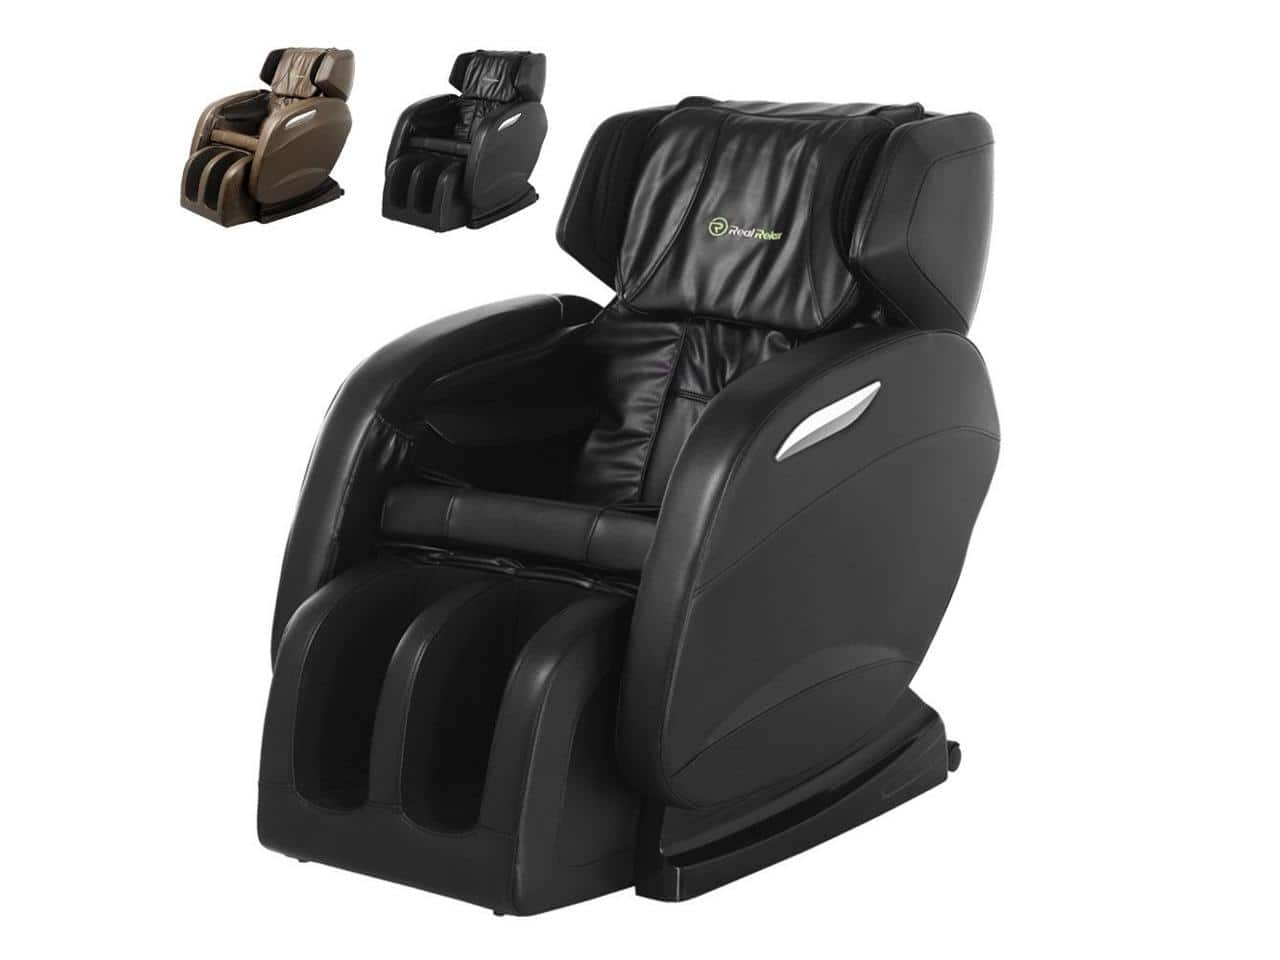 realrelax full body shiatsu massage chair recliner zero gravity foot roller